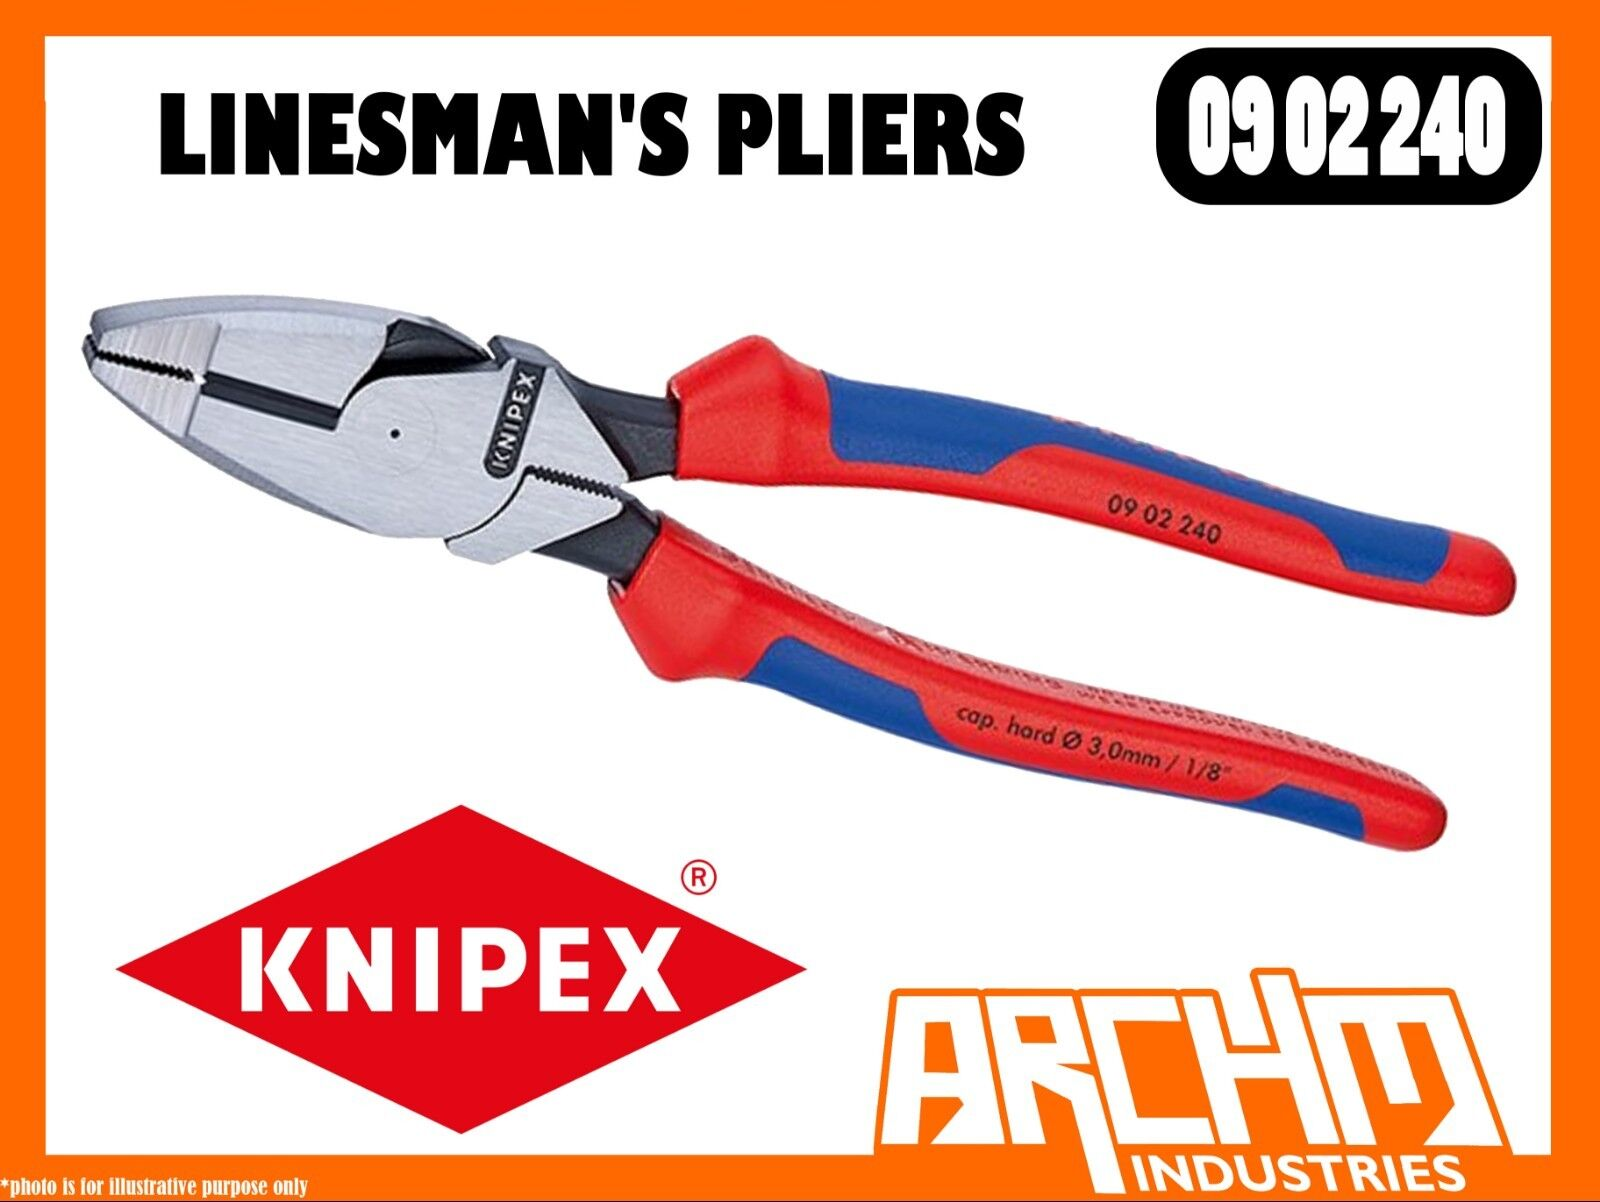 KNIPEX 0902240 - LINESMAN'S PLIERS - 240MM CUTTING EDGE HIGH TRANSMISSION RATIO